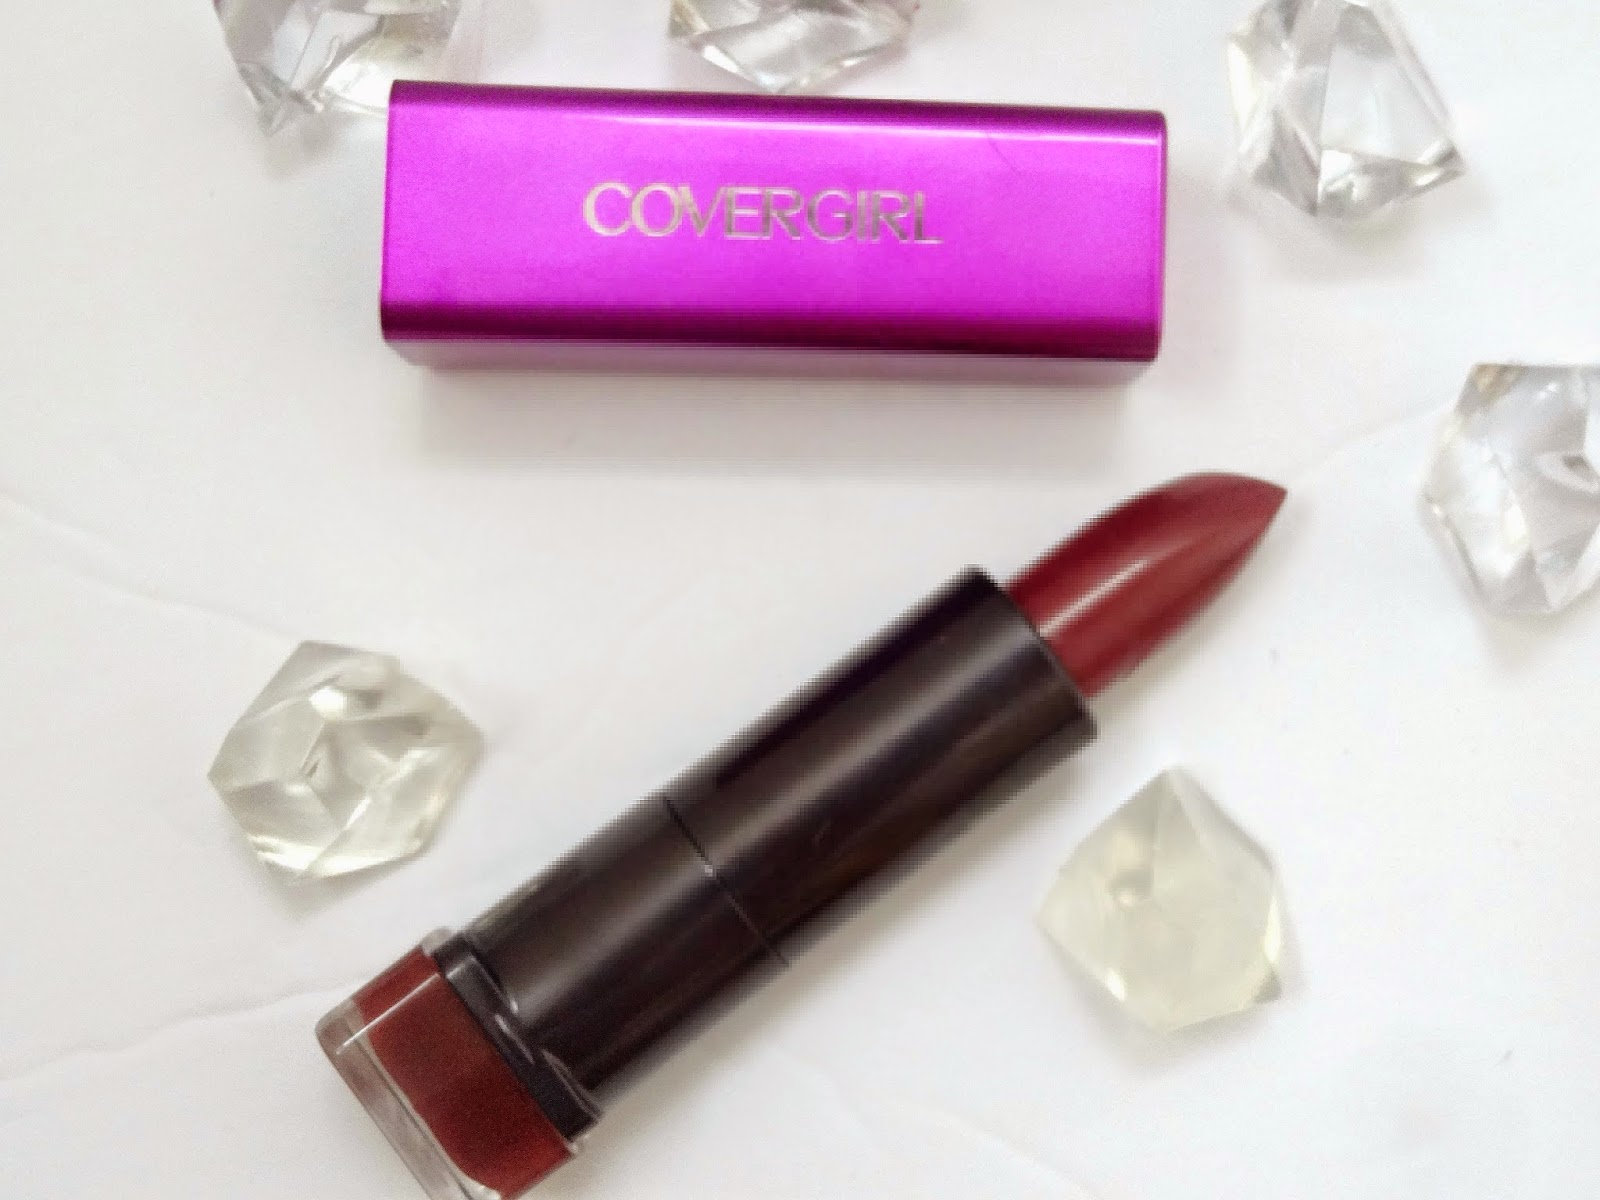 Covergirl Colorlicious Lipstick in Euphoria